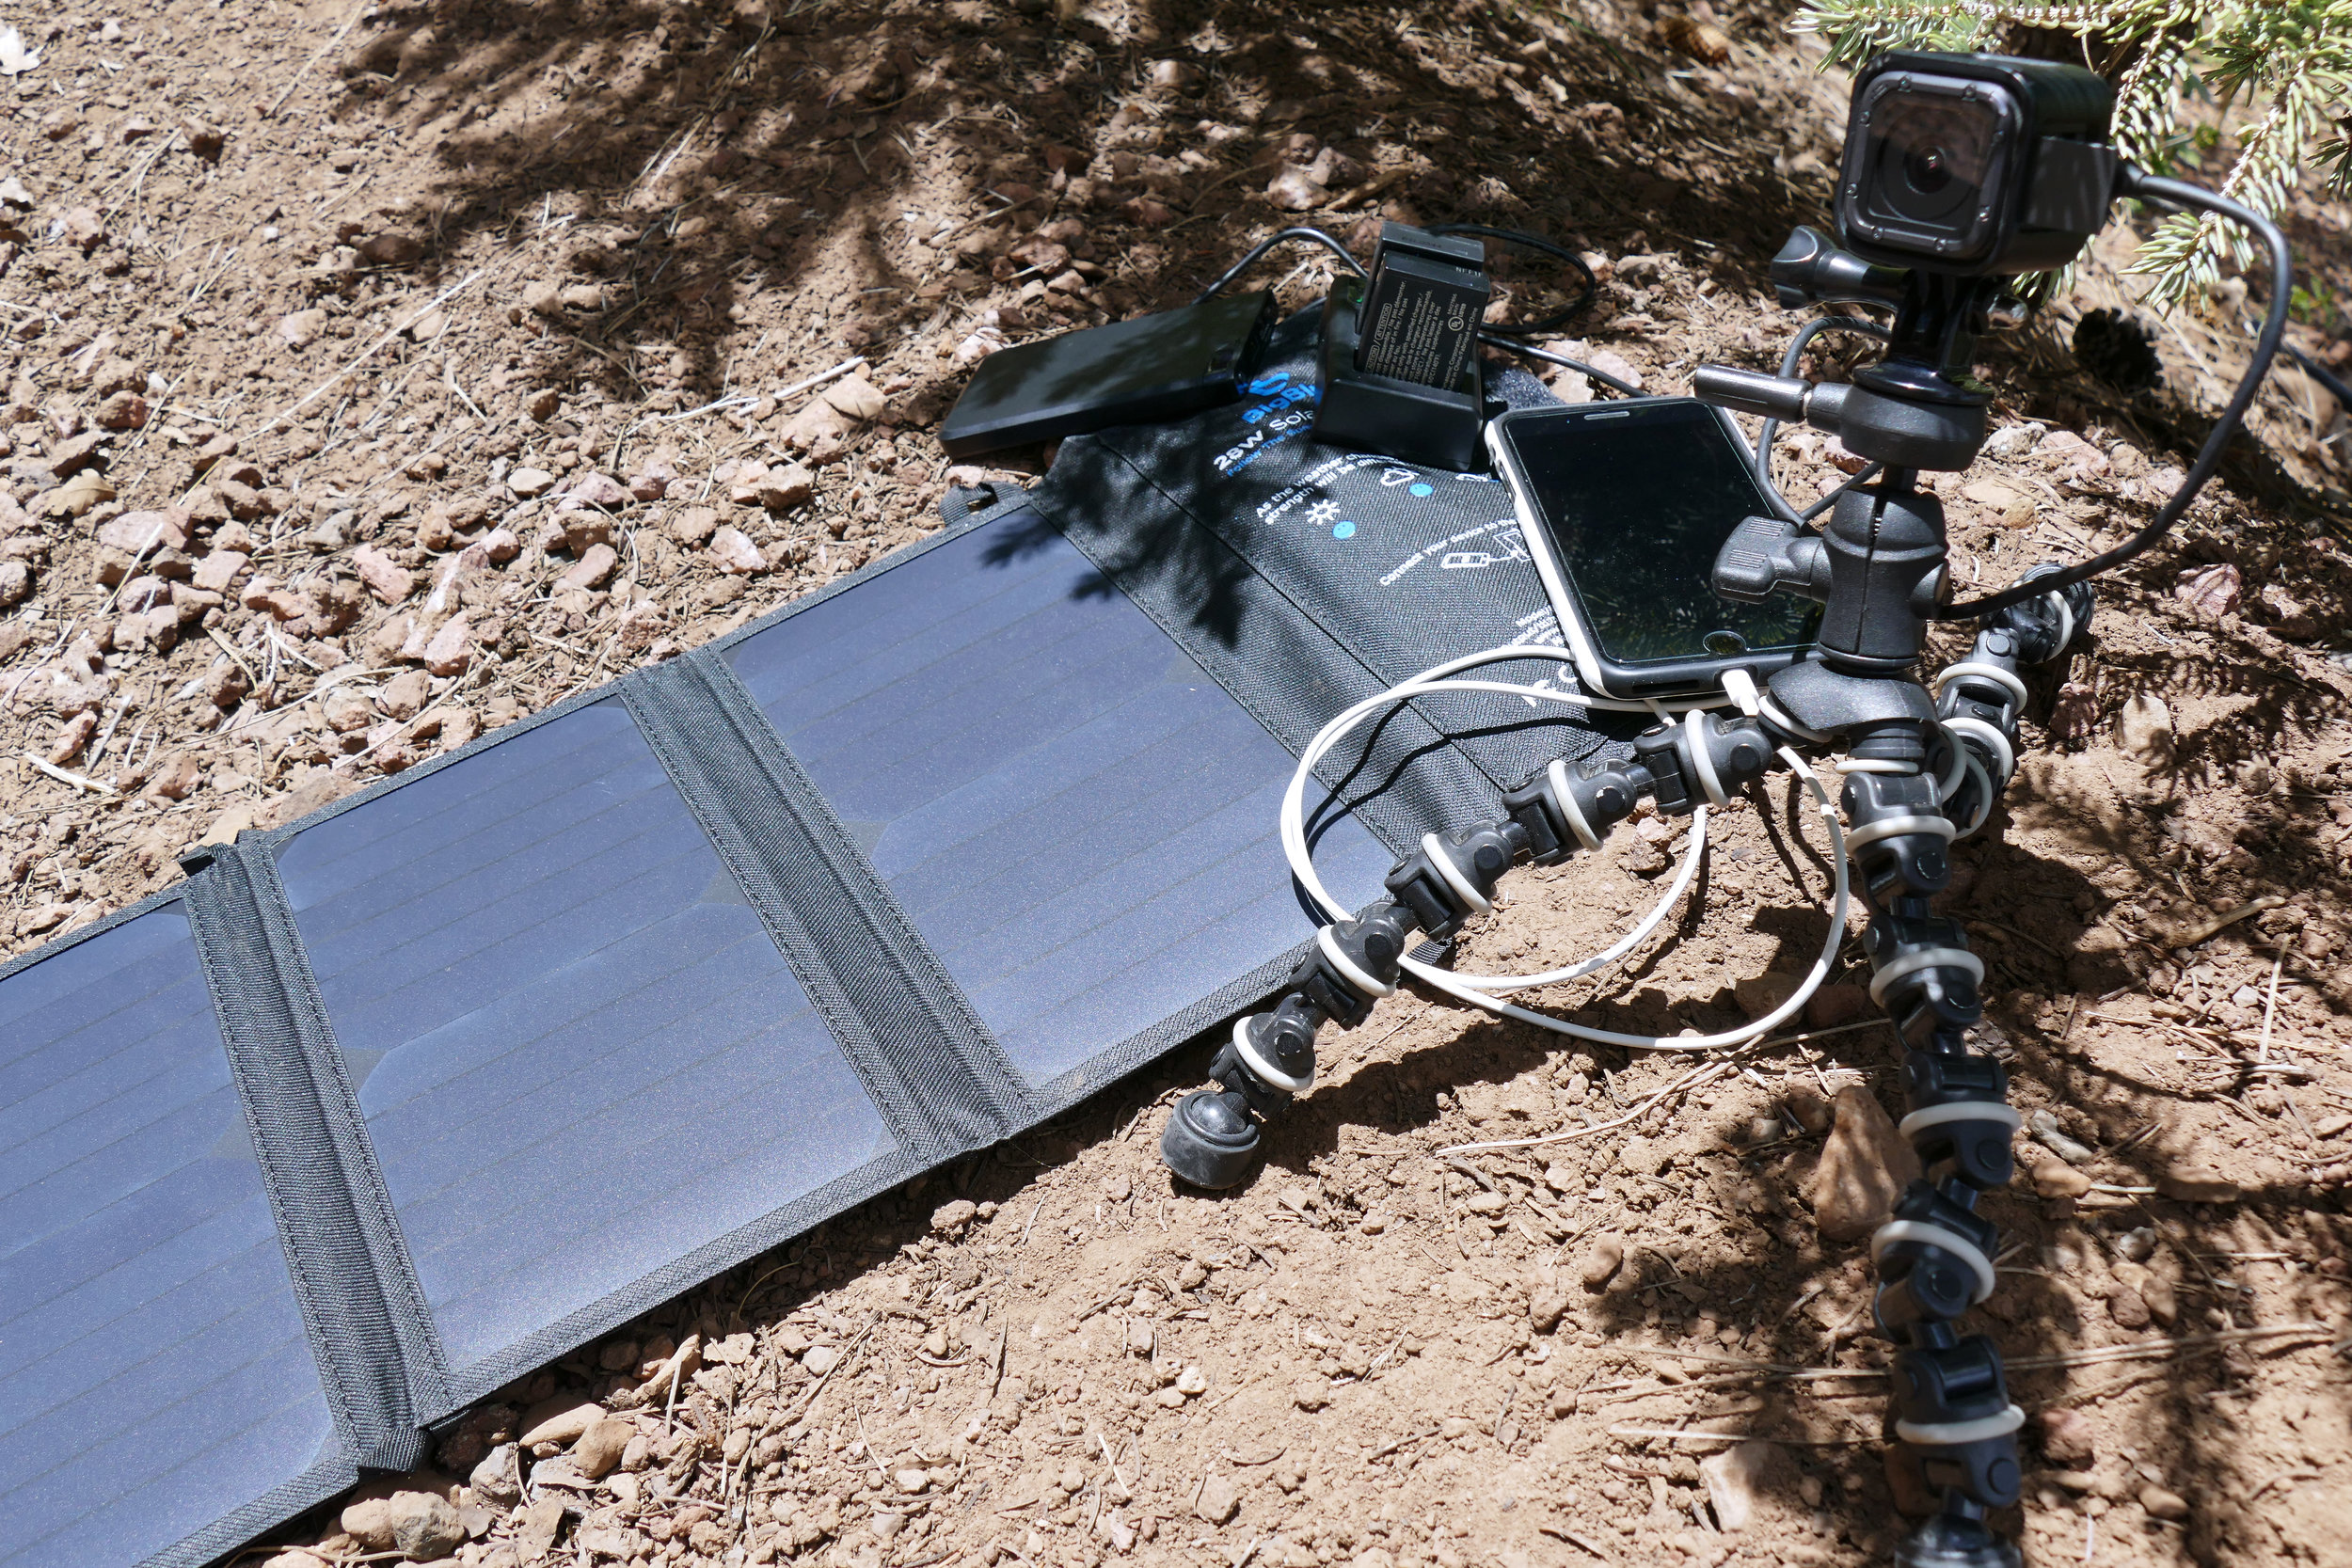 One charger and some sunshine, and I am refueling my phone, 2 main camera batteries, and the GoPro…I love technology!